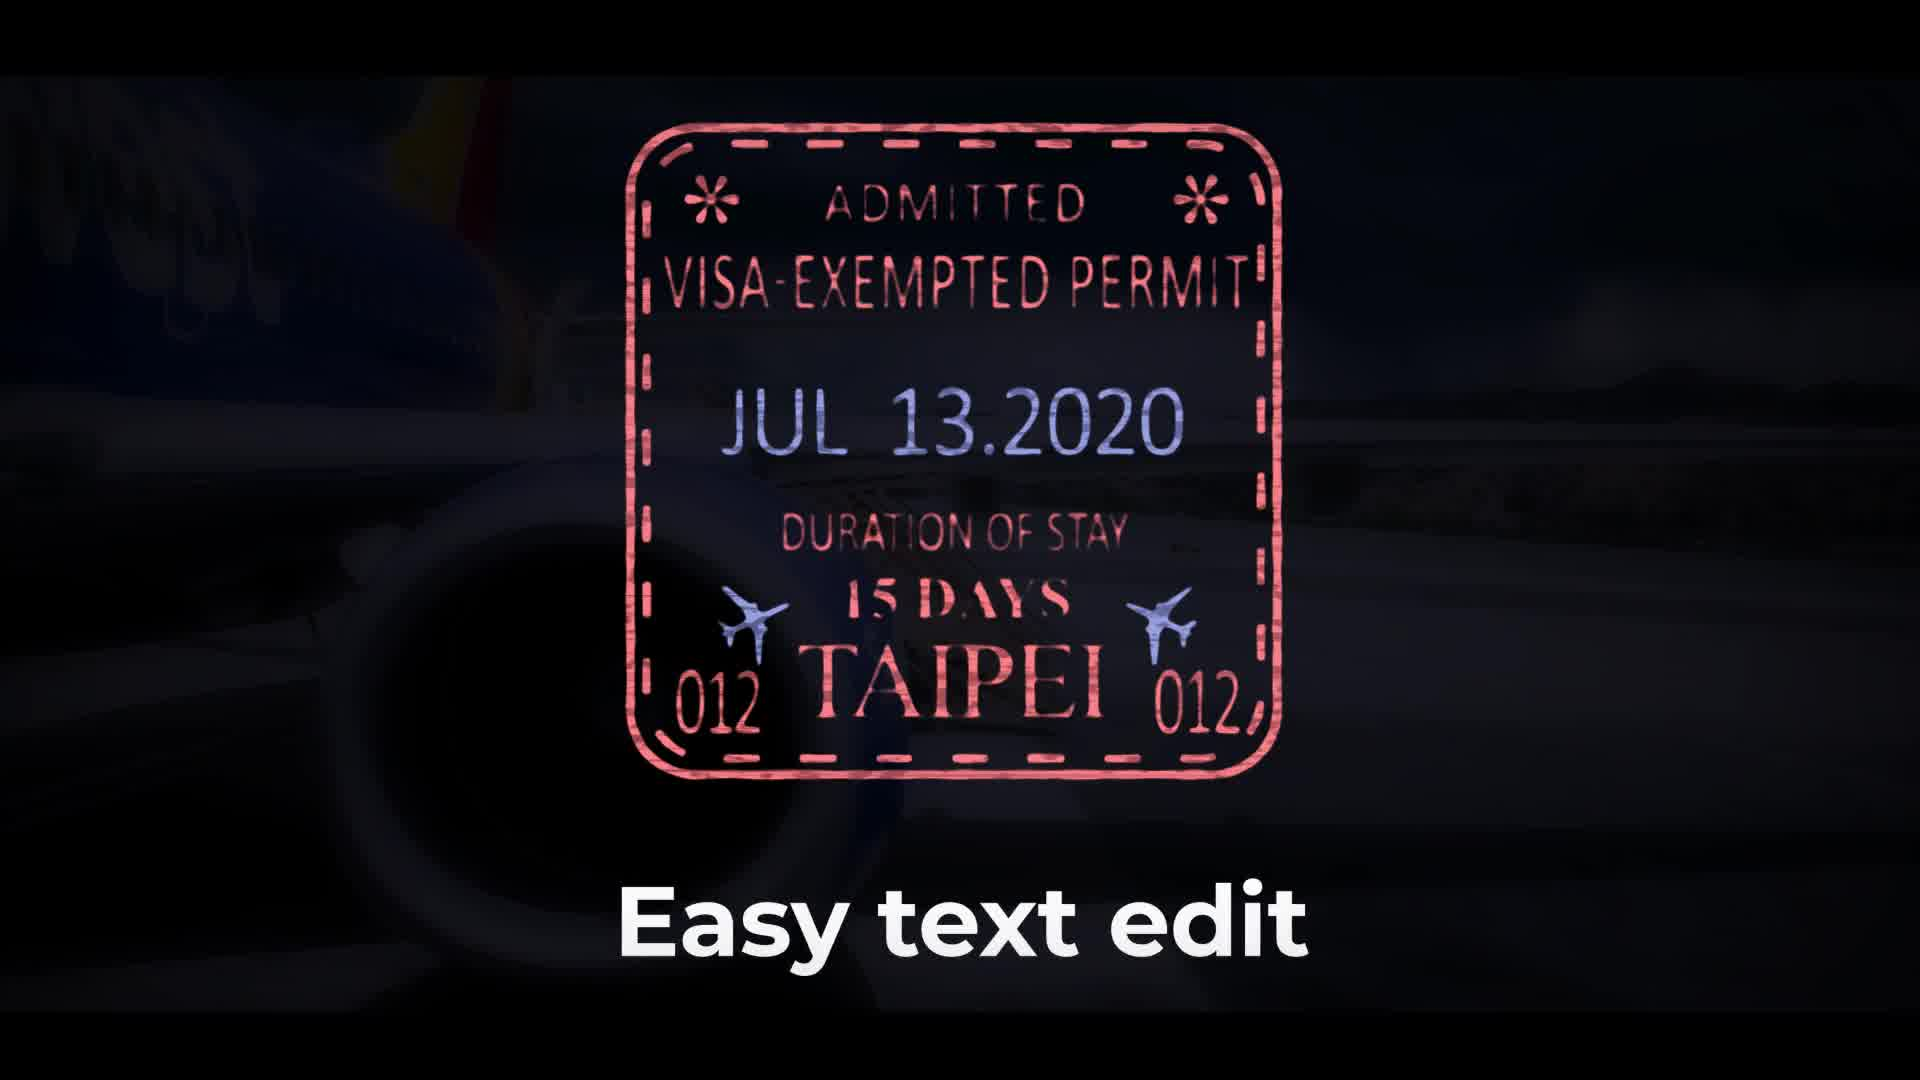 50 Travel Stamps Videohive 23673412 After Effects Image 10